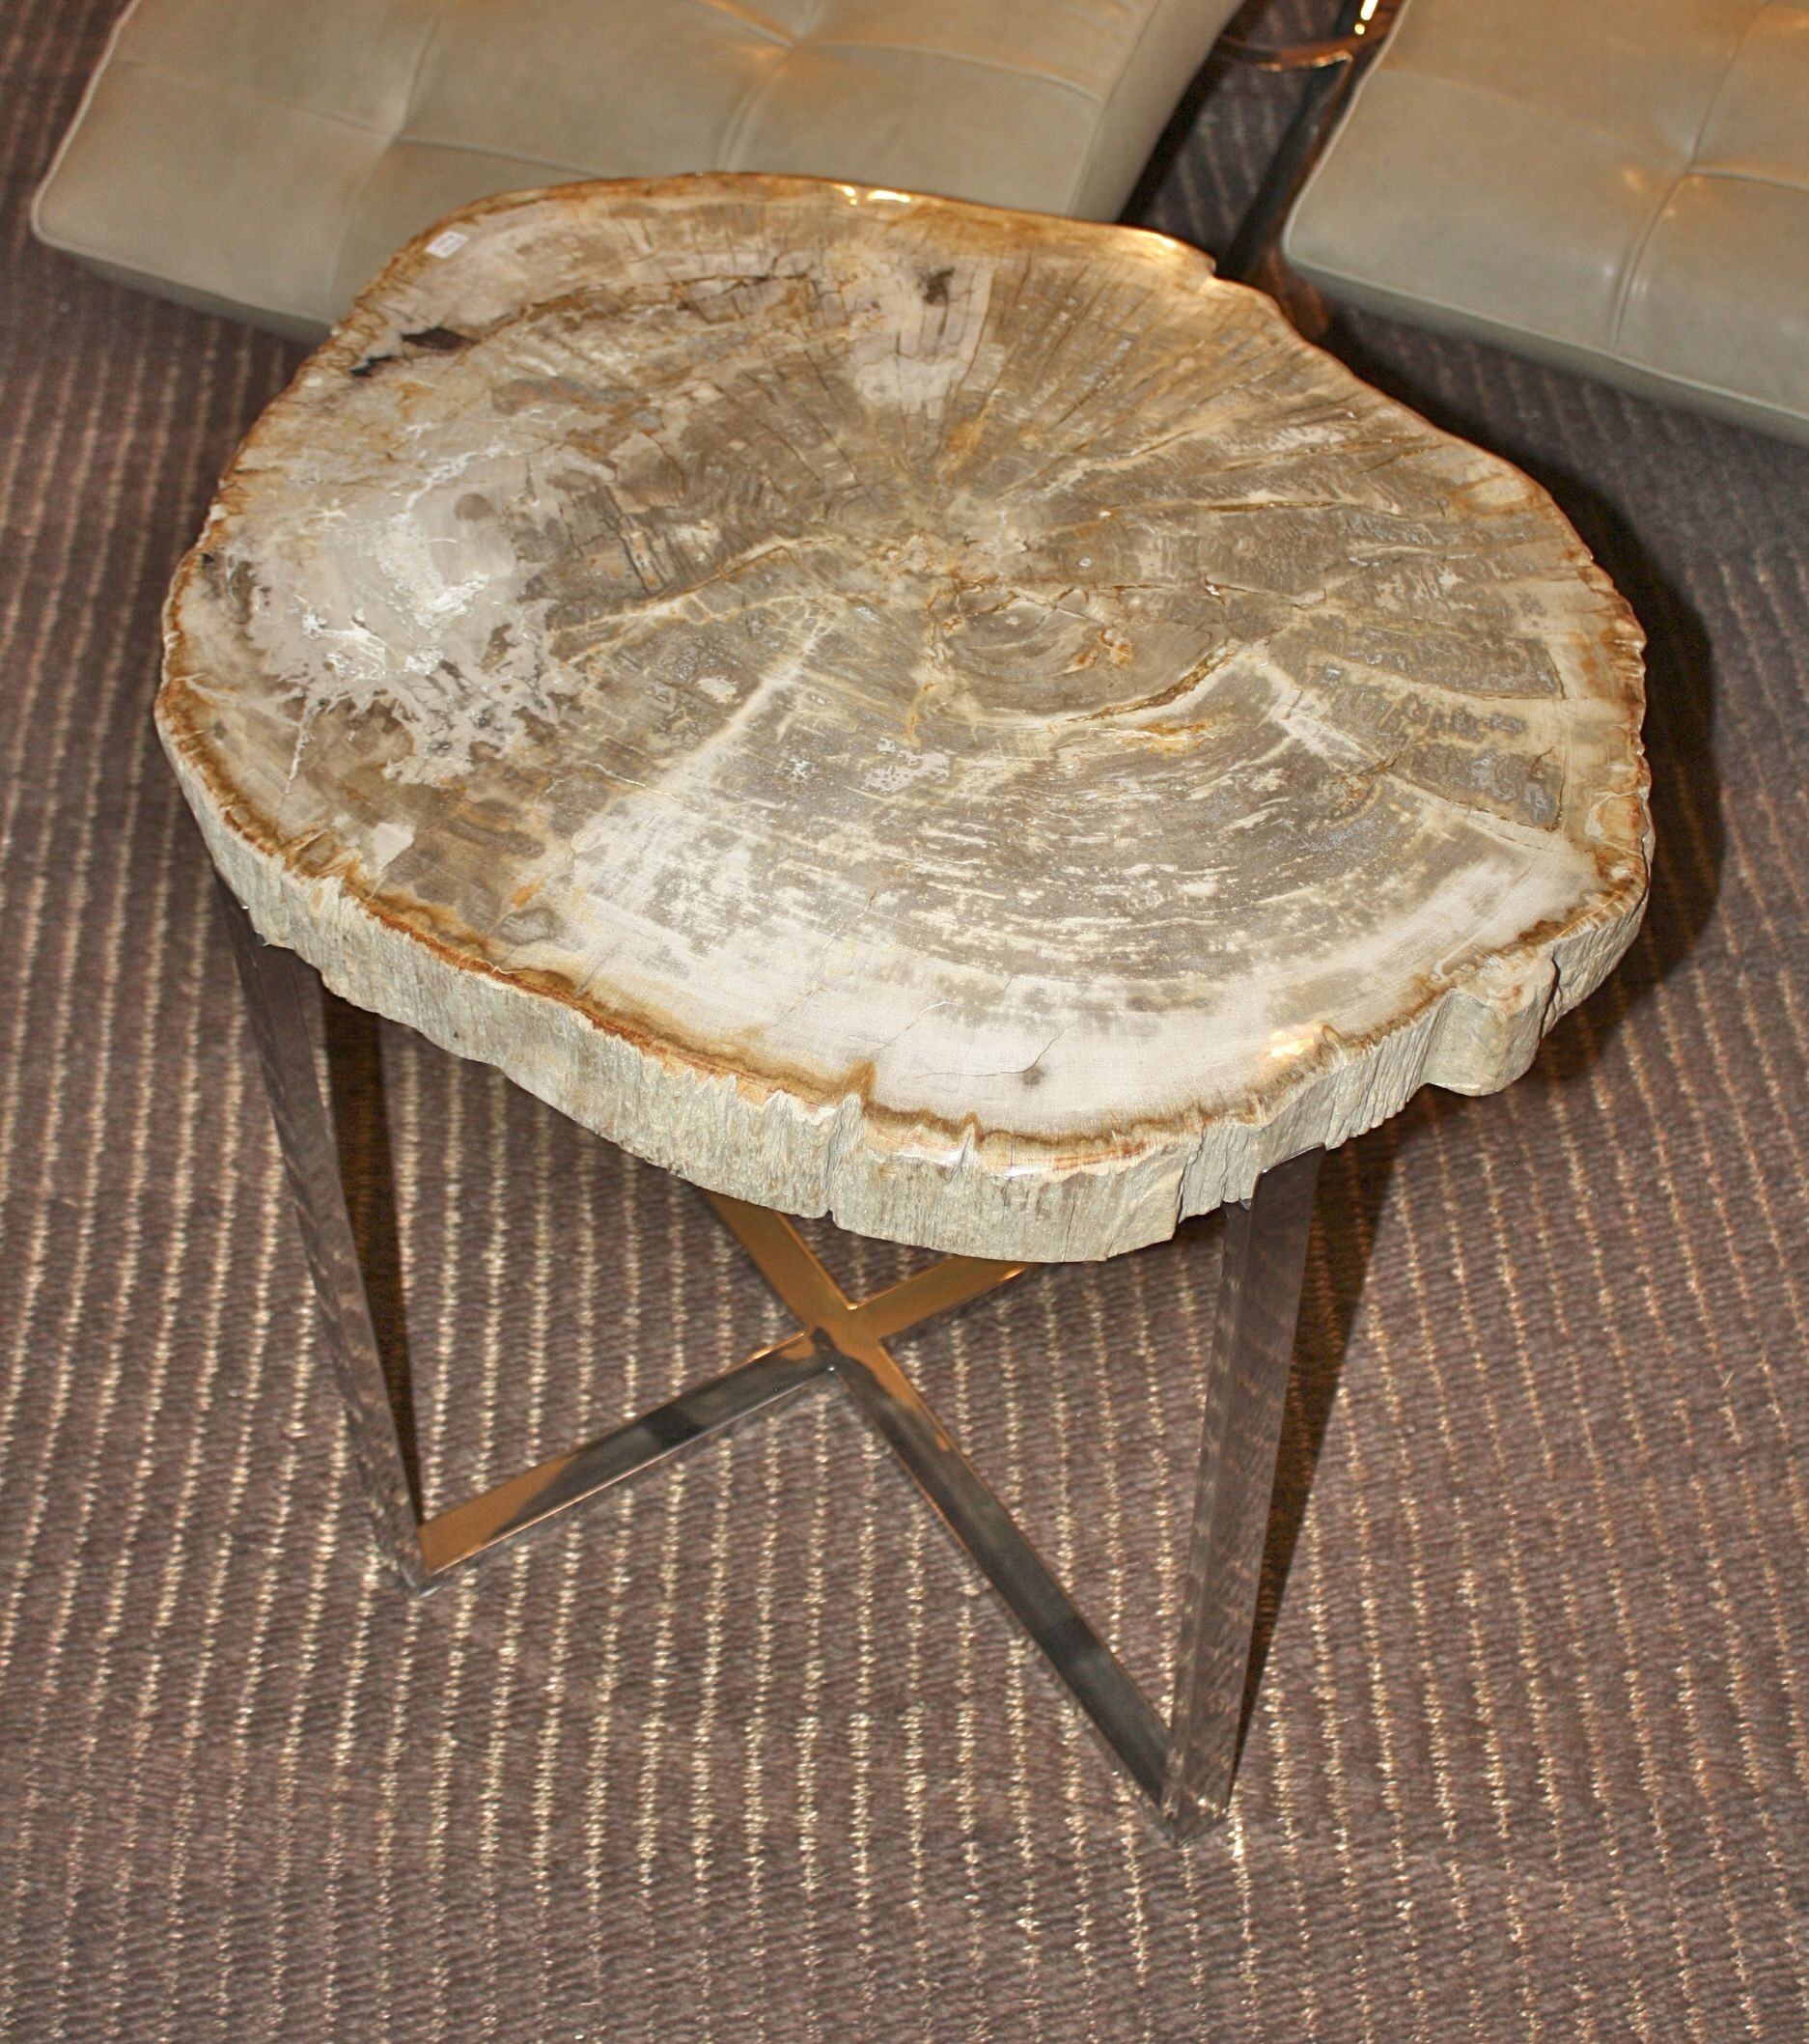 skirts queen the outrageous awesome log style end tables idea petrified wood slice side table unique accent bali chic asian small scale furniture for spaces bedroom lamp sets